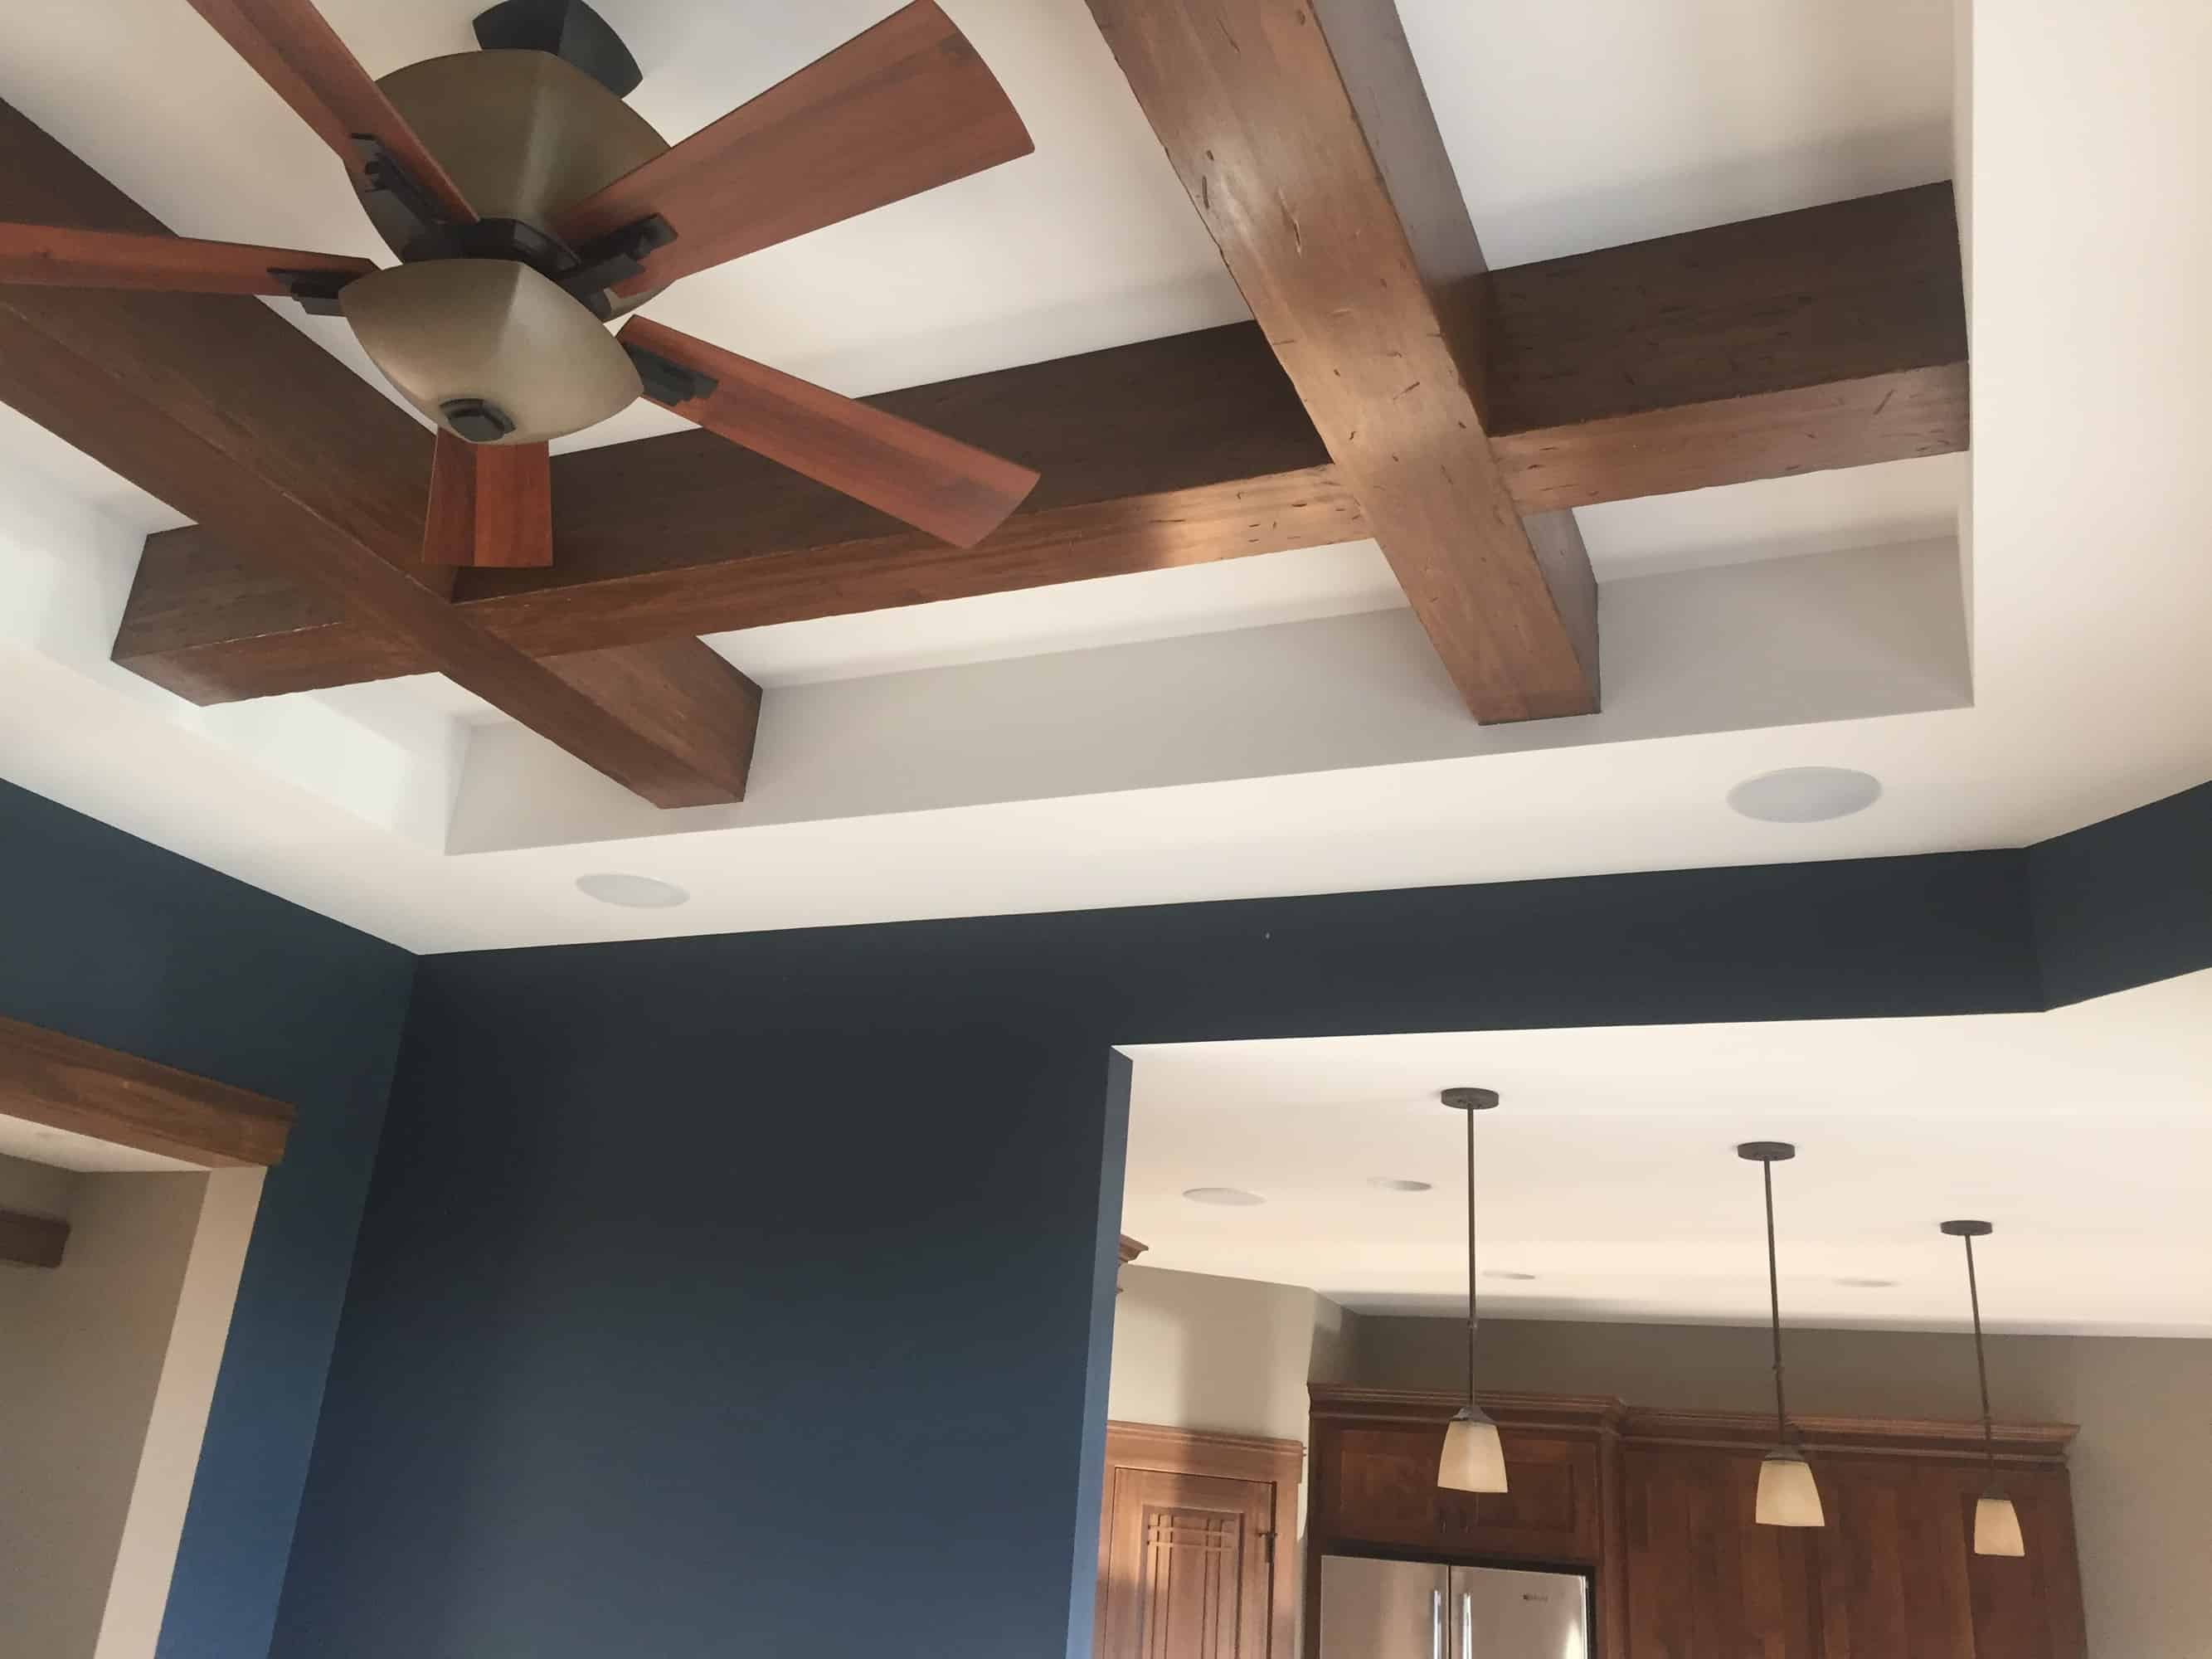 x sound speakers surround best photo round nice in ceiling of mounted ceilings designs